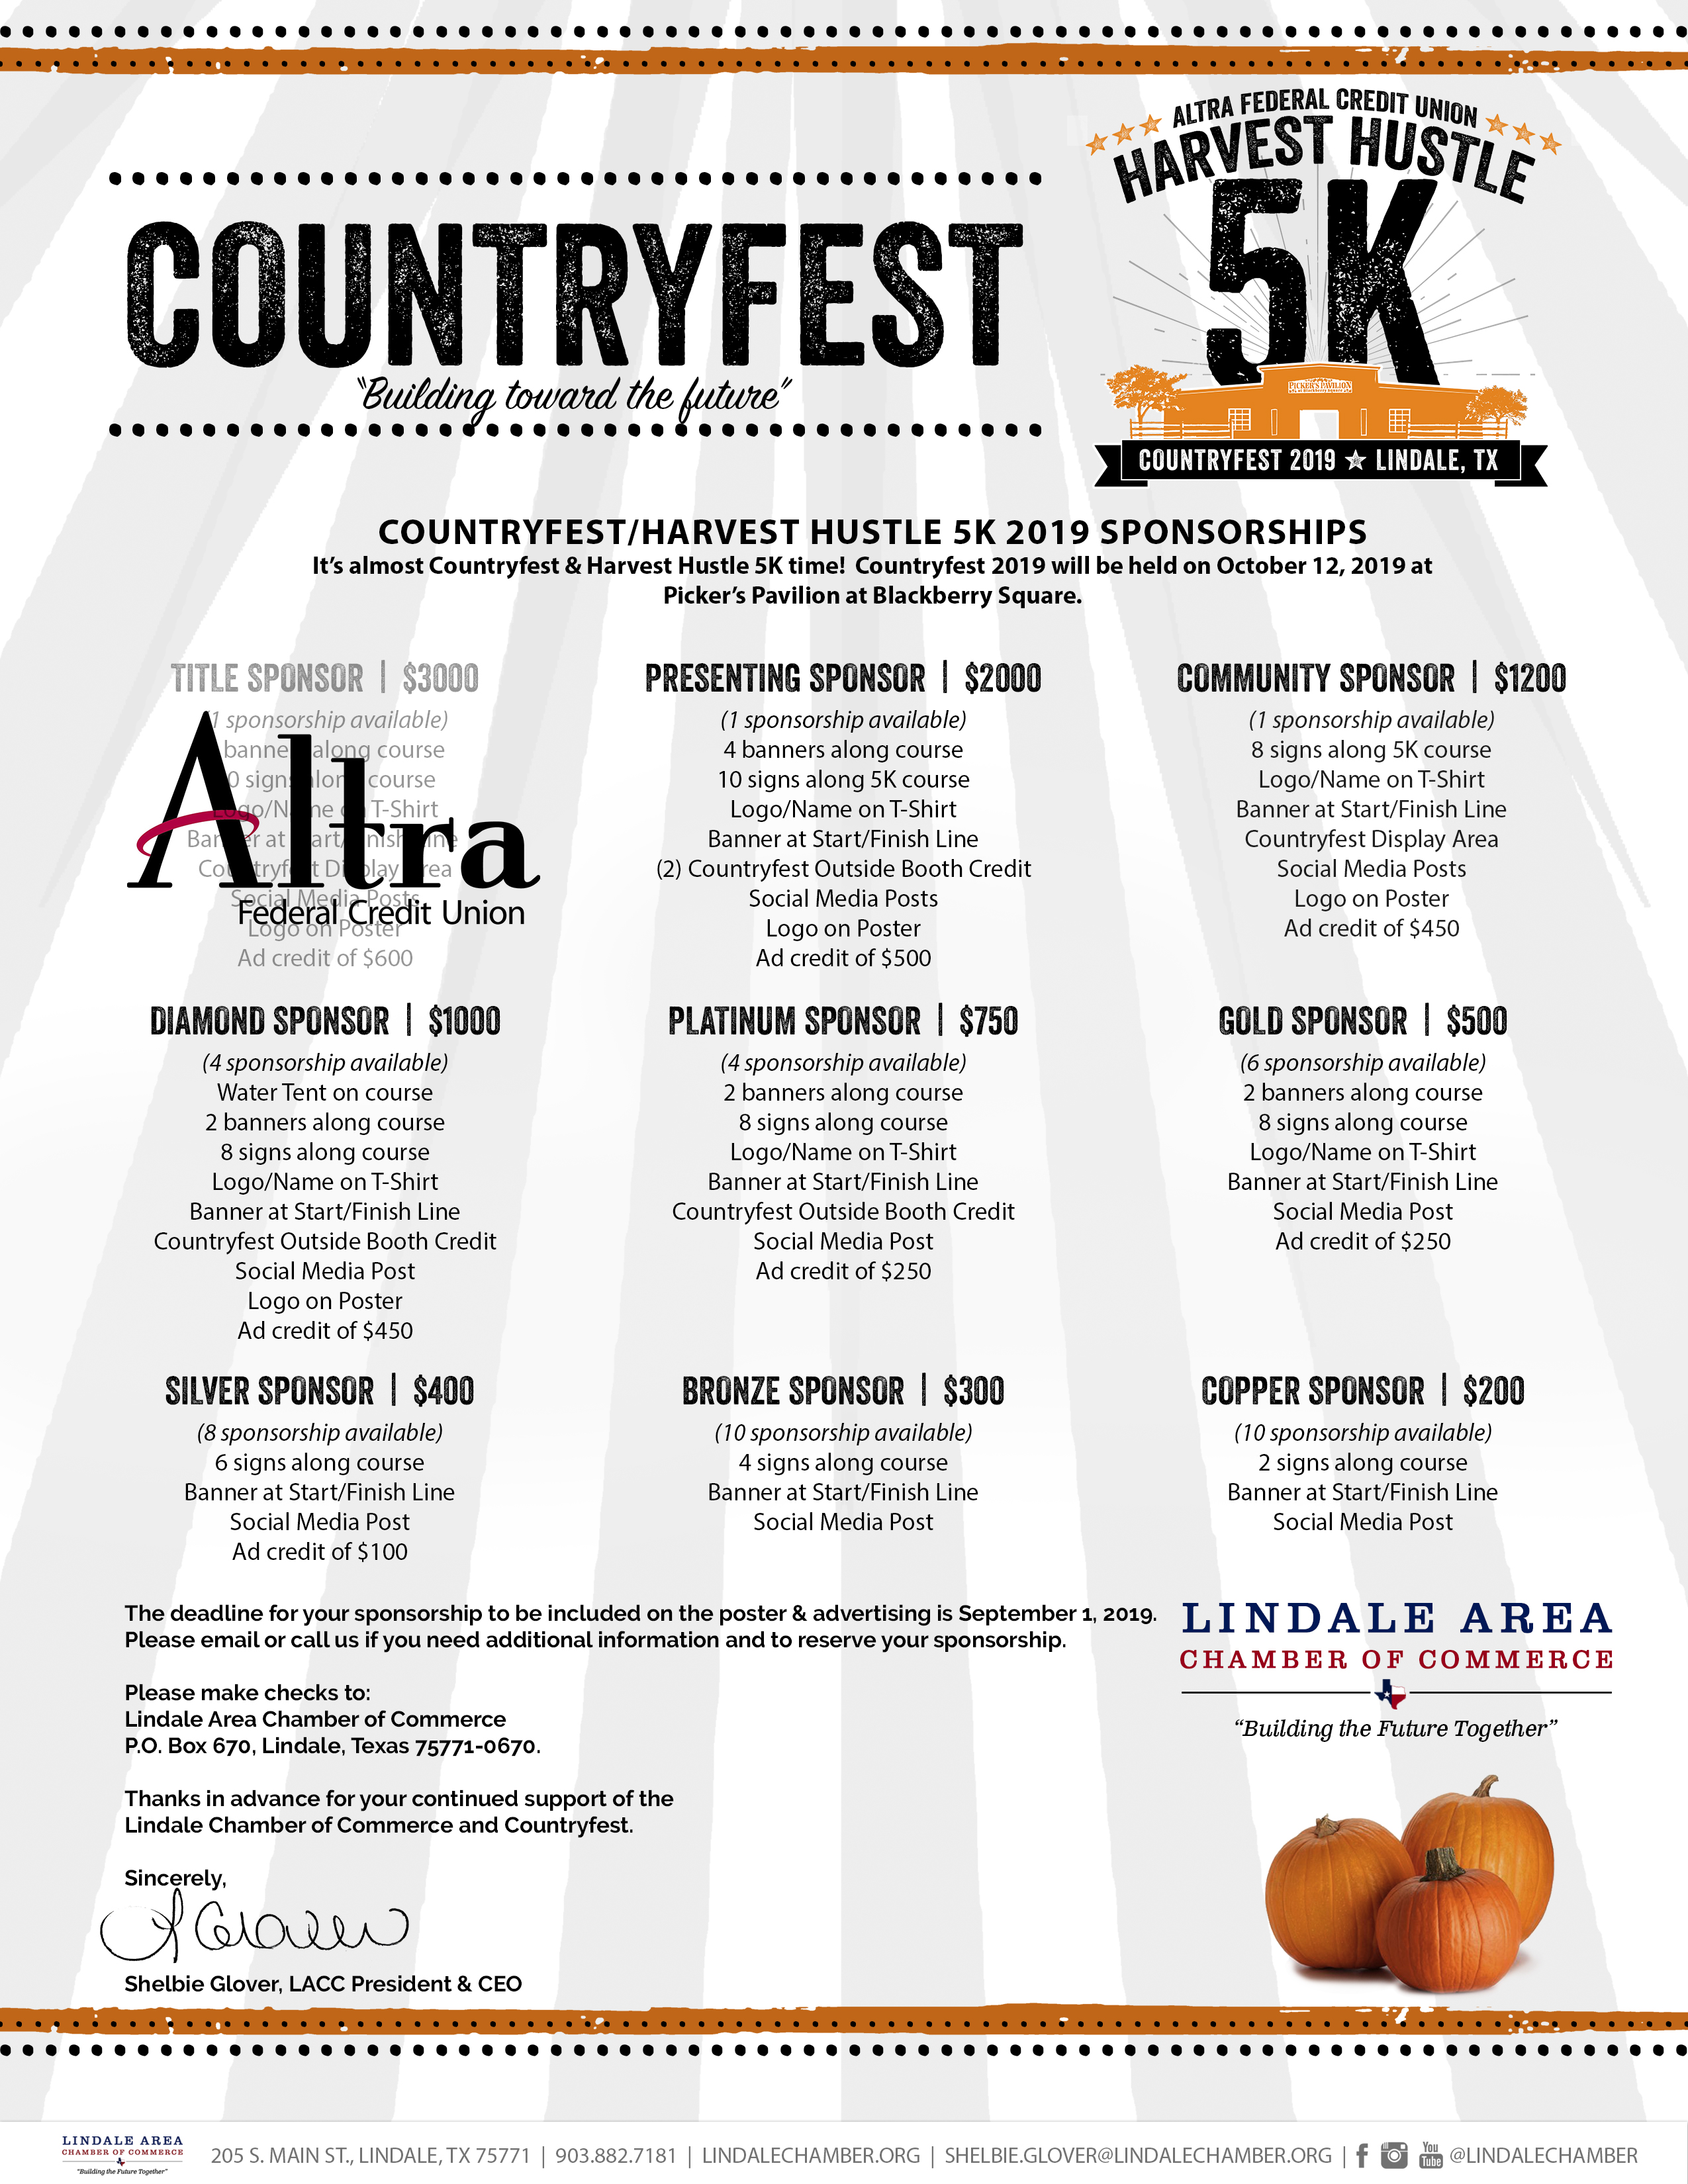 Harvest Hustle 5K 2019 - Oct 12, 2019 - Lindale Area Chamber